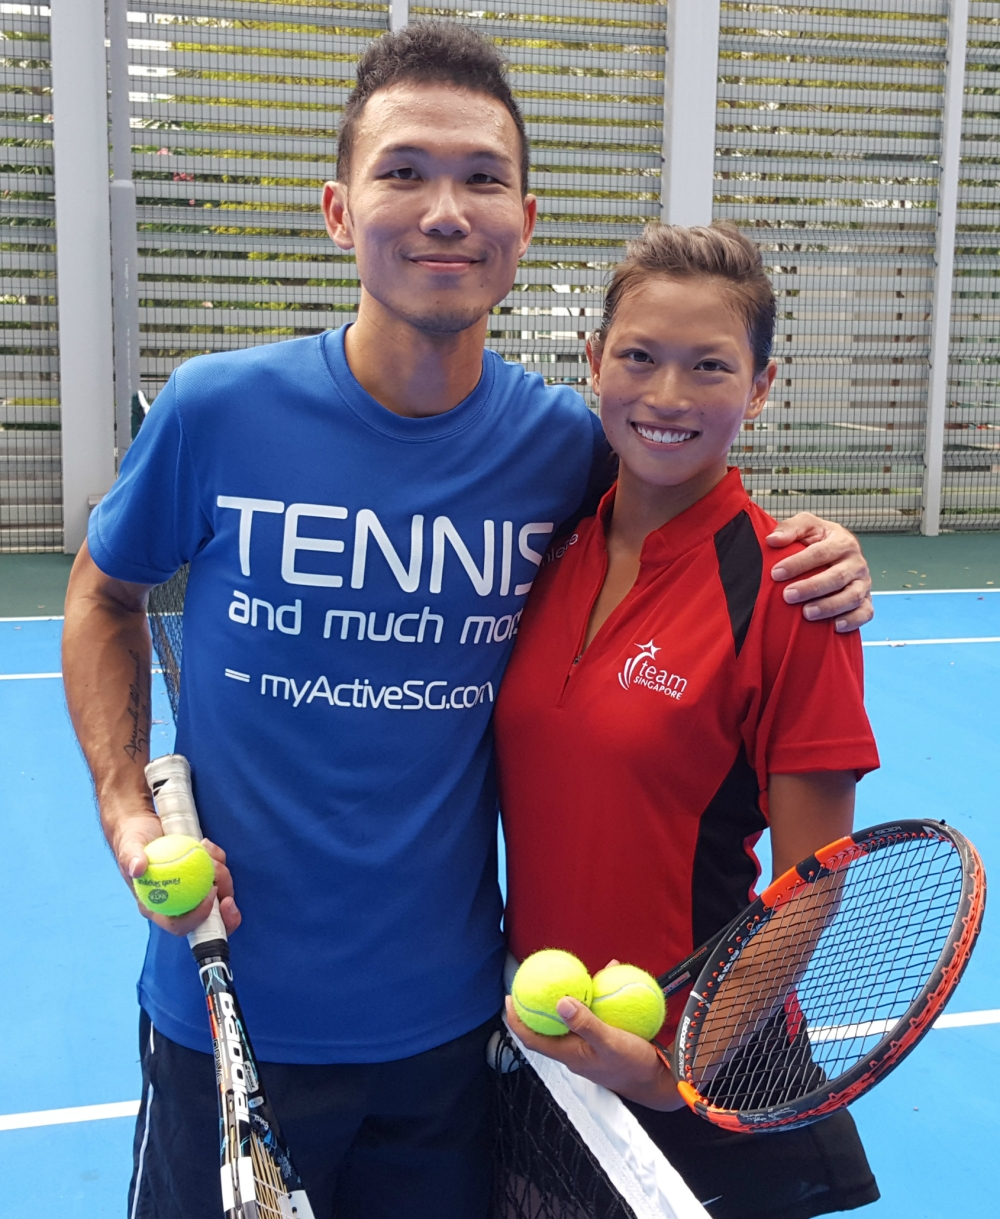 JY7 and Stefanie Tan.jpg